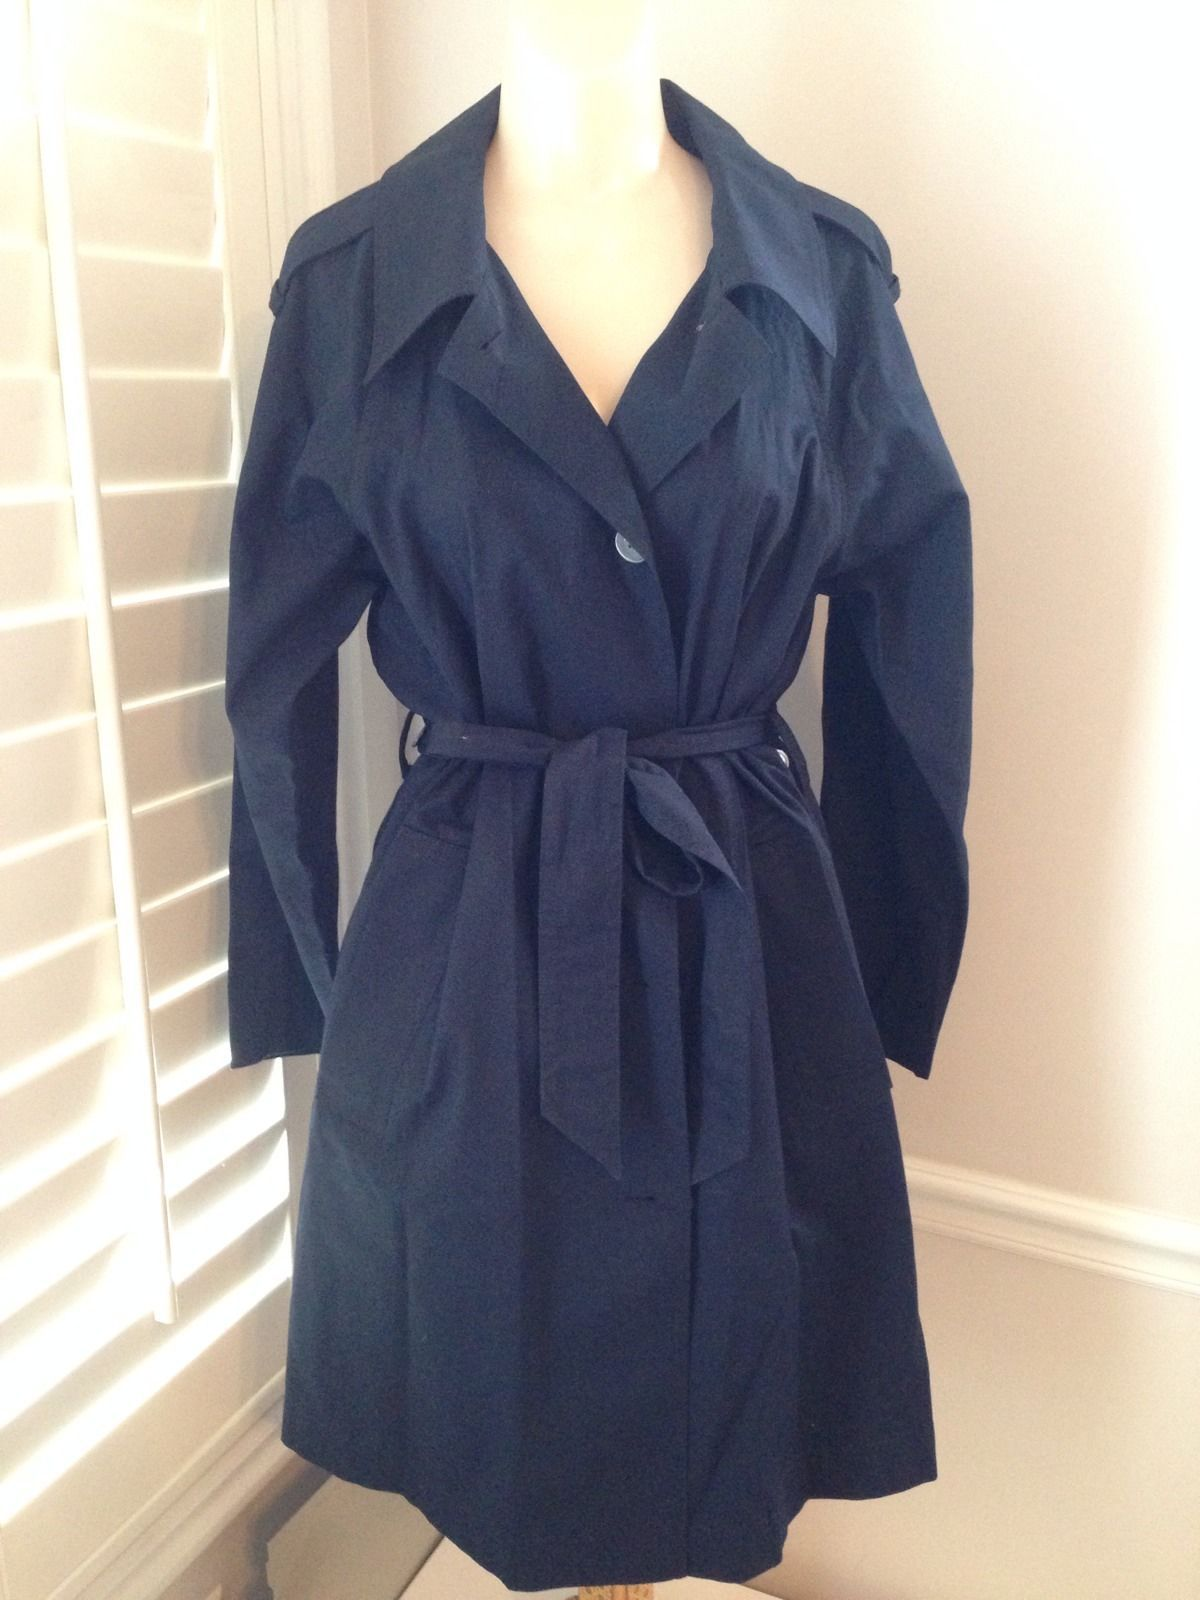 MARC BY MARC JACOBS STANDARD SUPPLY NAVY COTTON TRENCH COAT - SIZE L -NWT $498